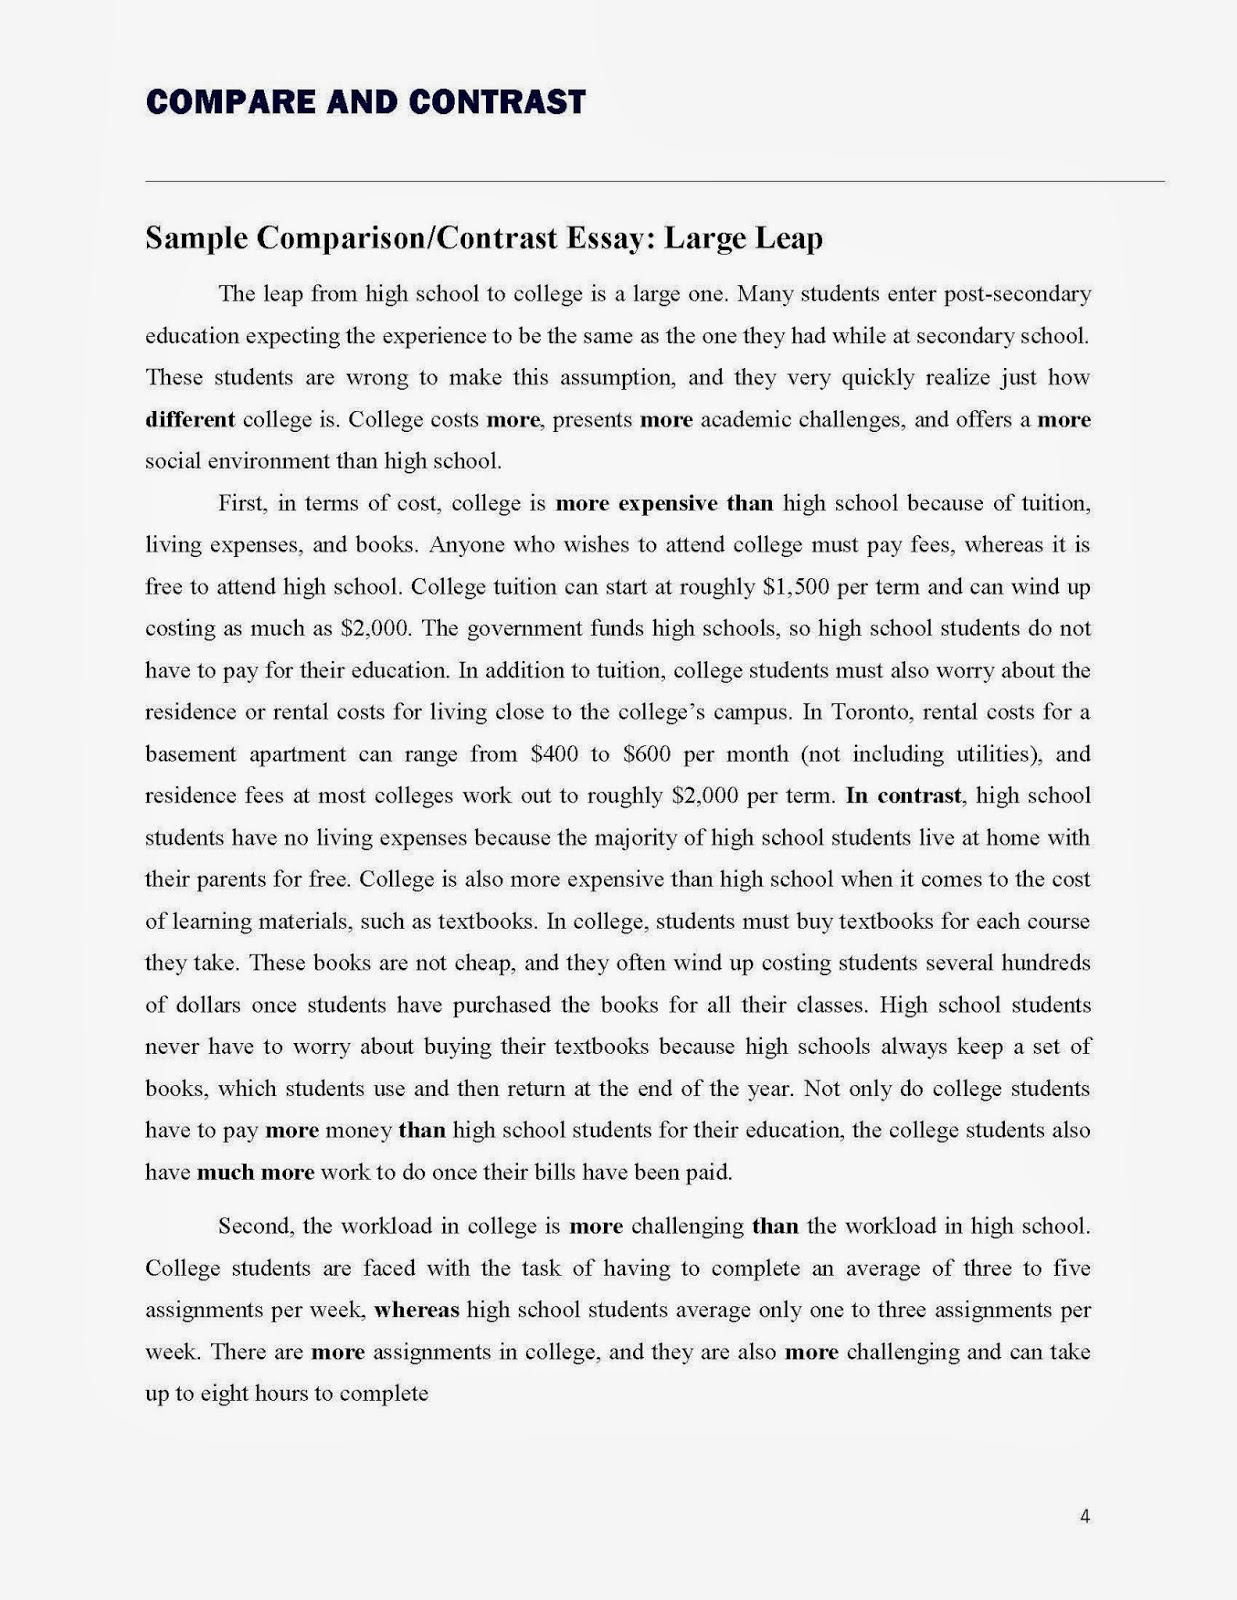 006 Essay Example Compare And Contrast Dog Cat Compare2band2bcontrast2bessay Page 4 Excellent Comparison Between Cats Dogs Pet Full